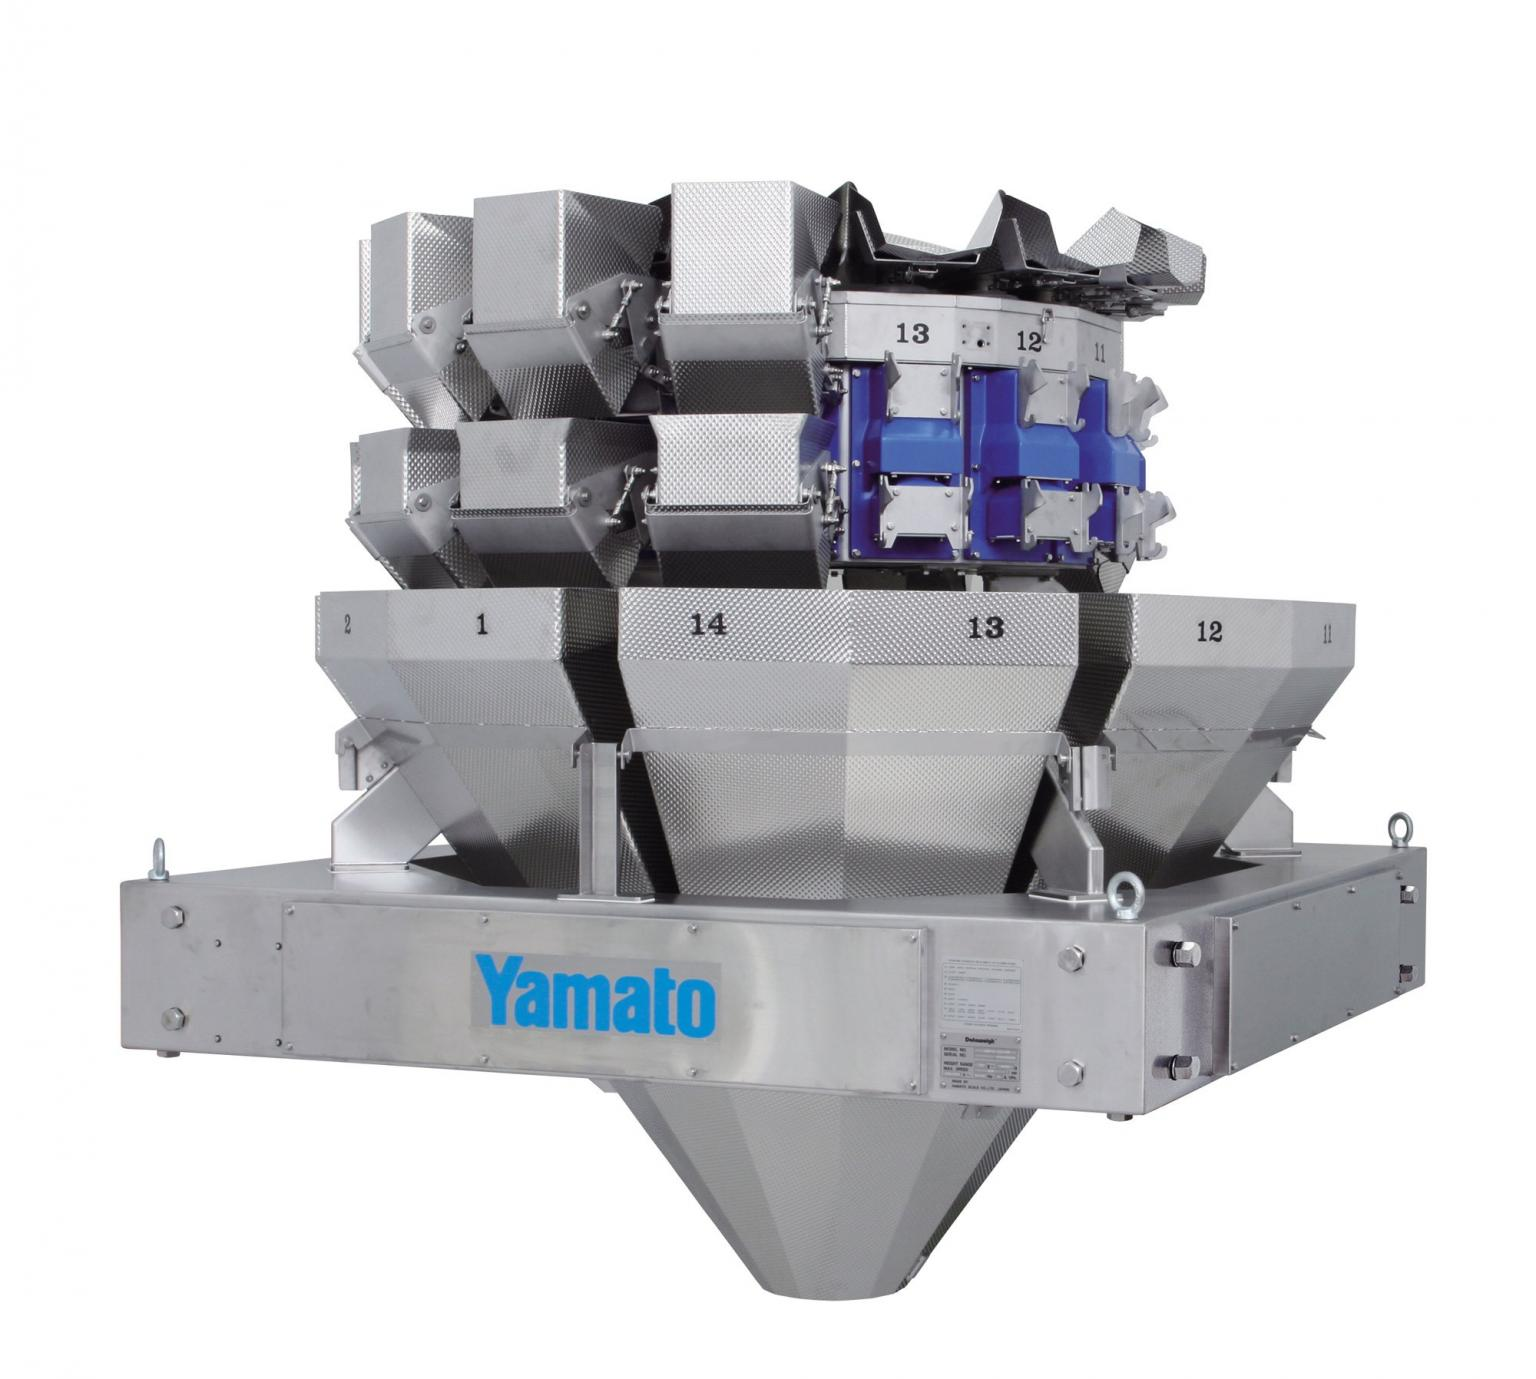 Yamato is to launch its new Dataweigh EPSILON range of multihead weighers